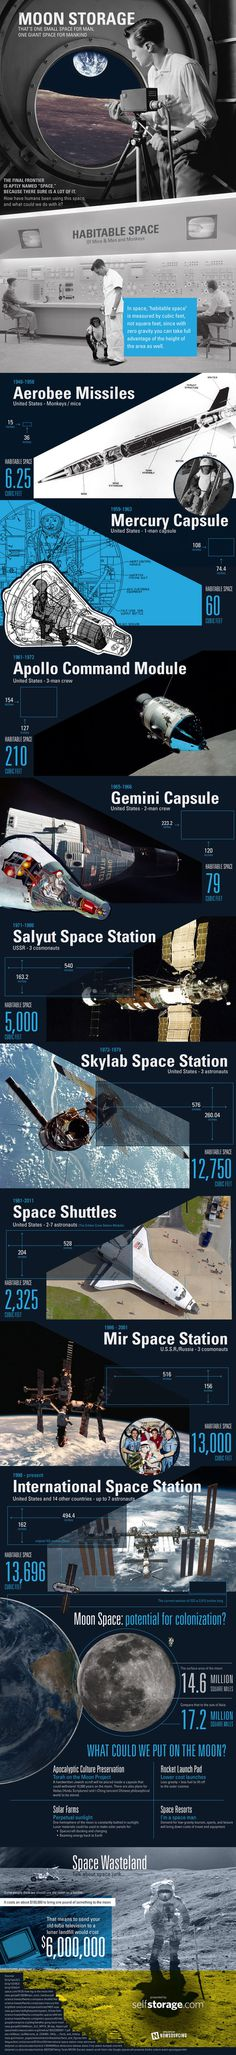 Storing stuff on the moon could be pricey, but vacationing there could be doable.Check out this infographic for more. #moon storage #using t